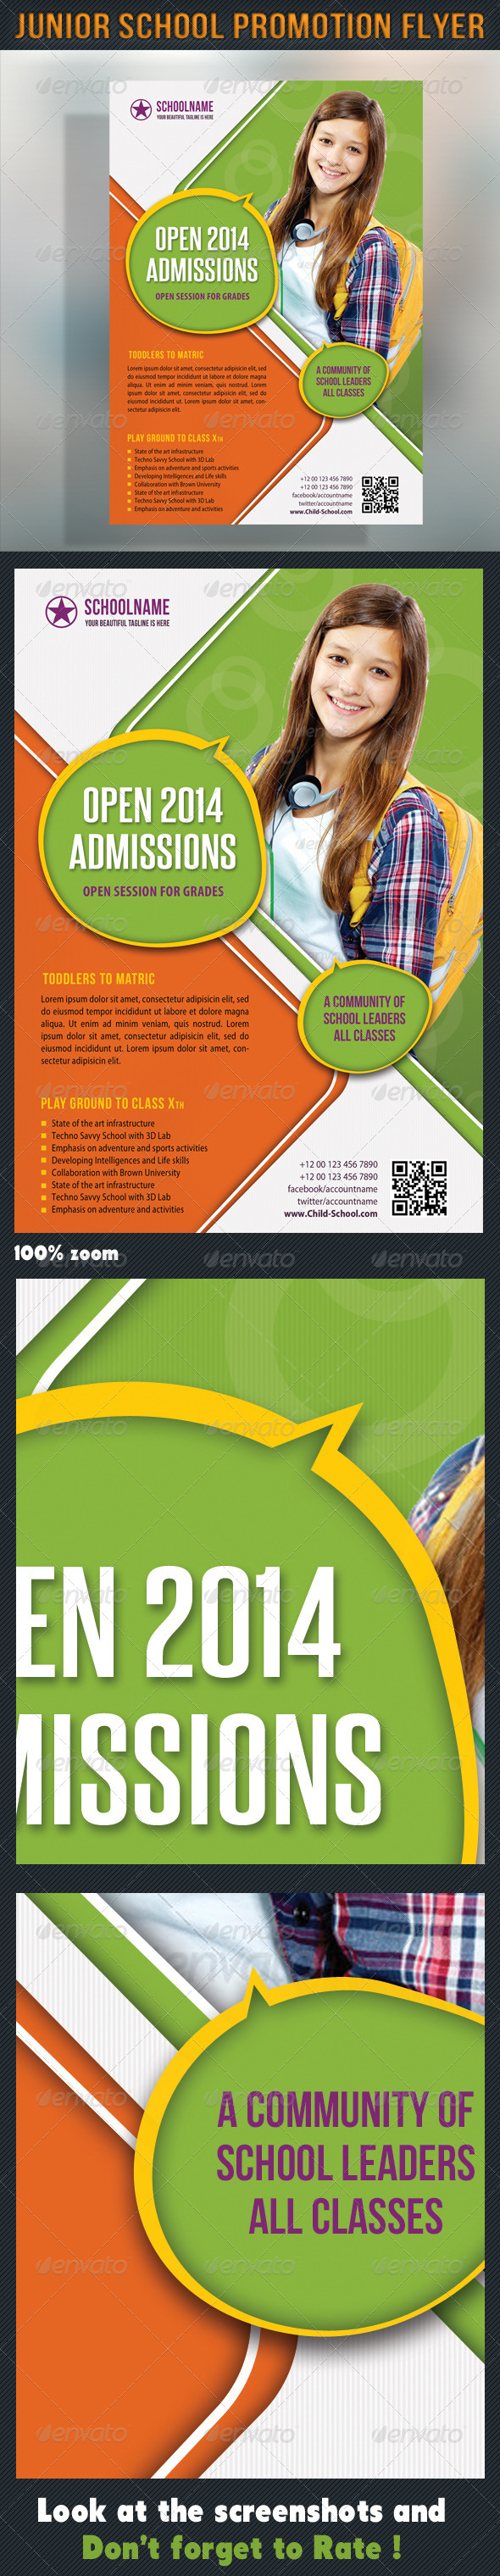 GraphicRiver Junior School Promotion Flyer 04 7131669